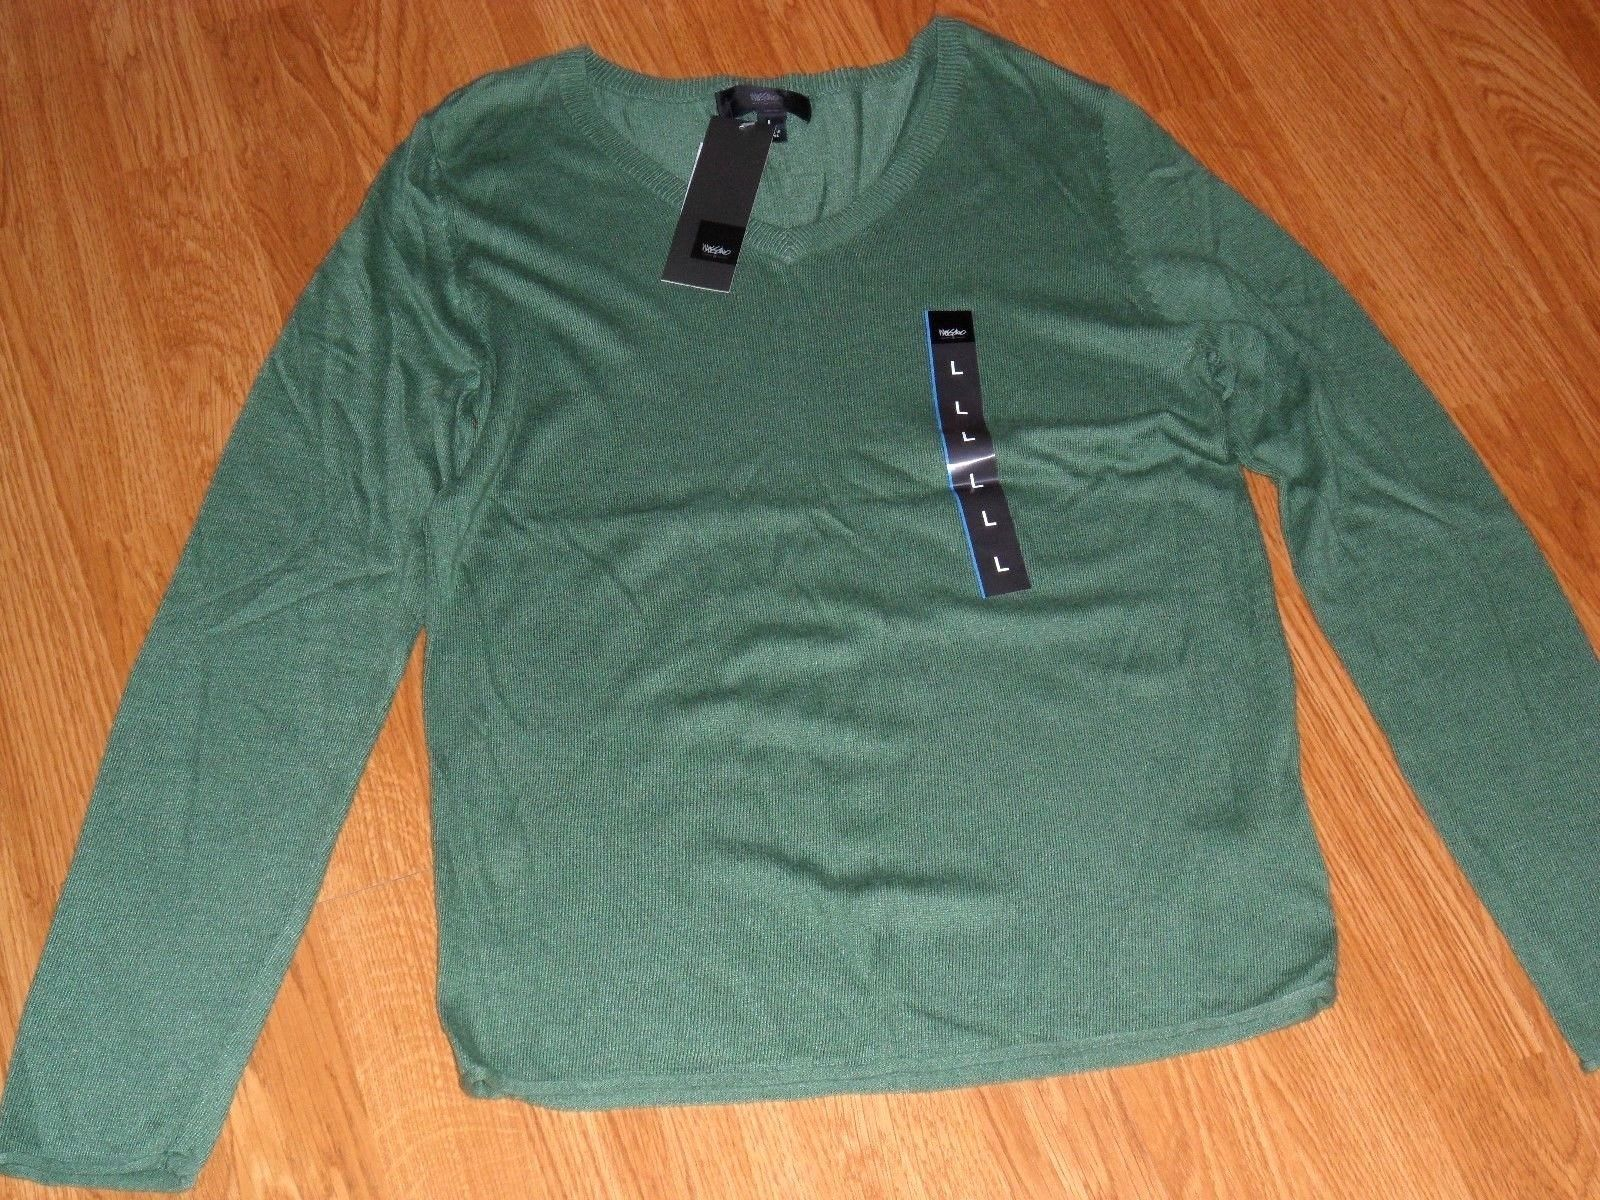 MISSIMO SWEATER TOP PULLOVER SIZE XS - L - XL GREEN PURPLE GRAY LIGHTWEIGHT NWT